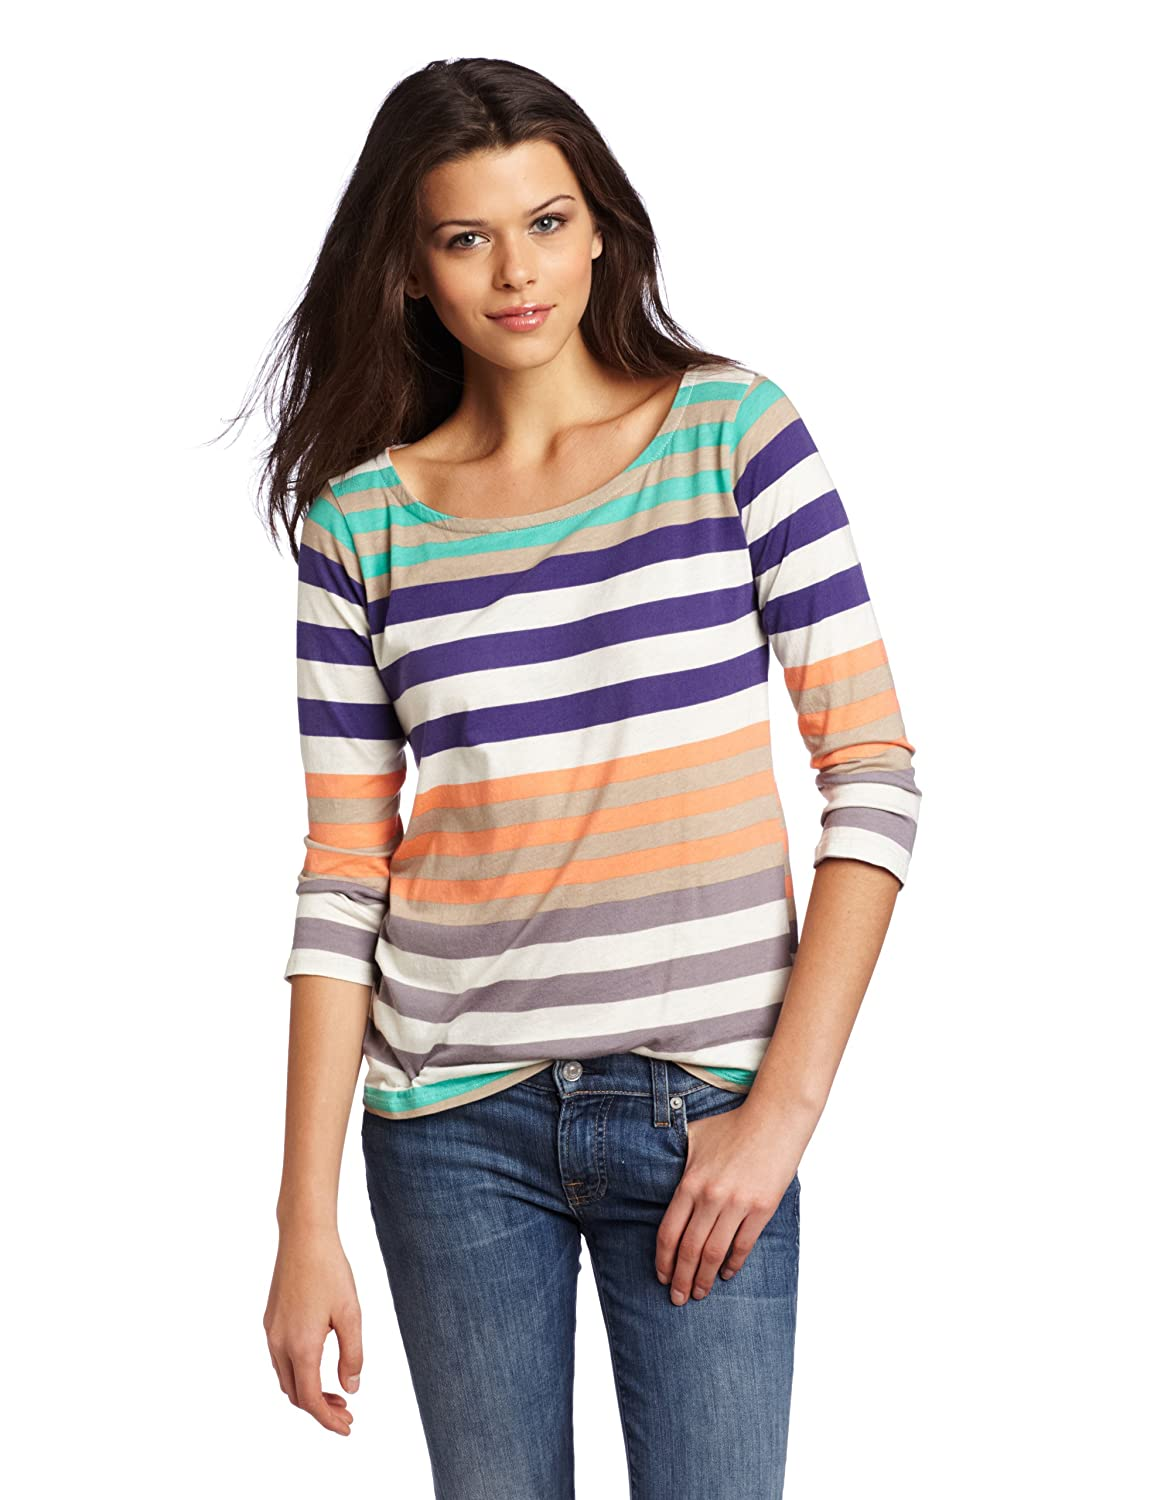 Women S Designer Clothing Stripe Top Wilson Joseph